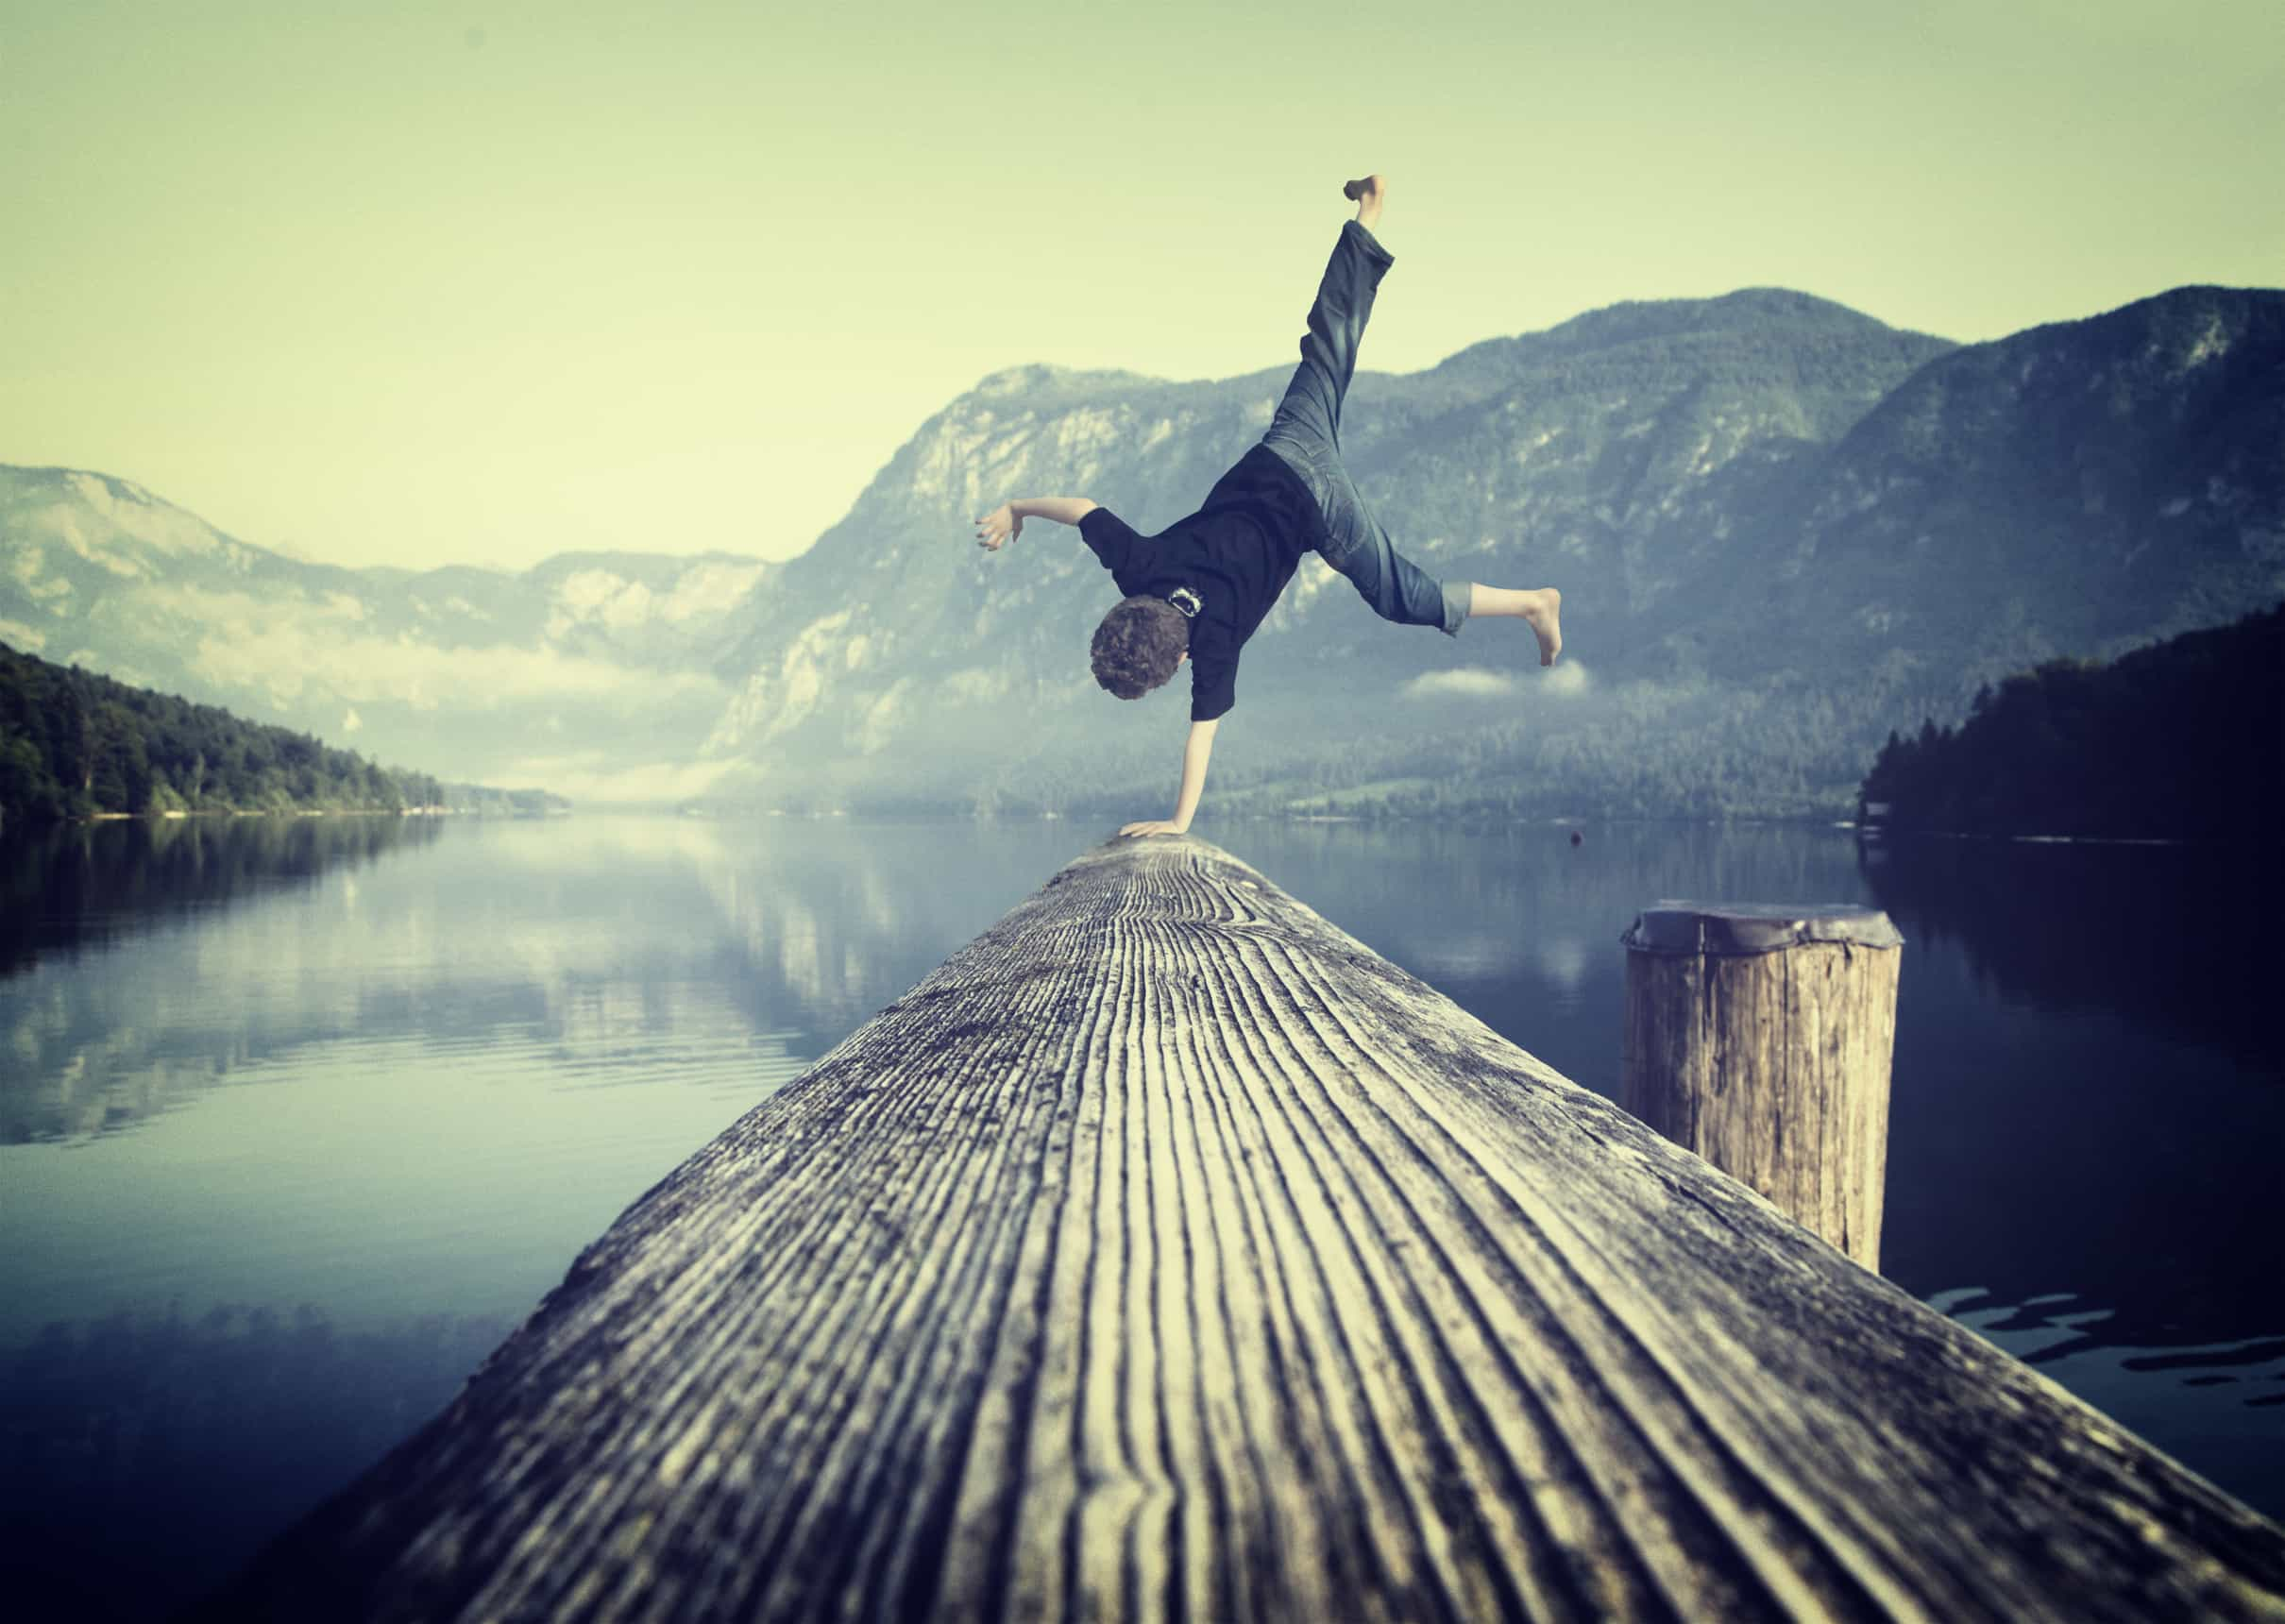 Young boy handstanding on jetty - Youth and vitality